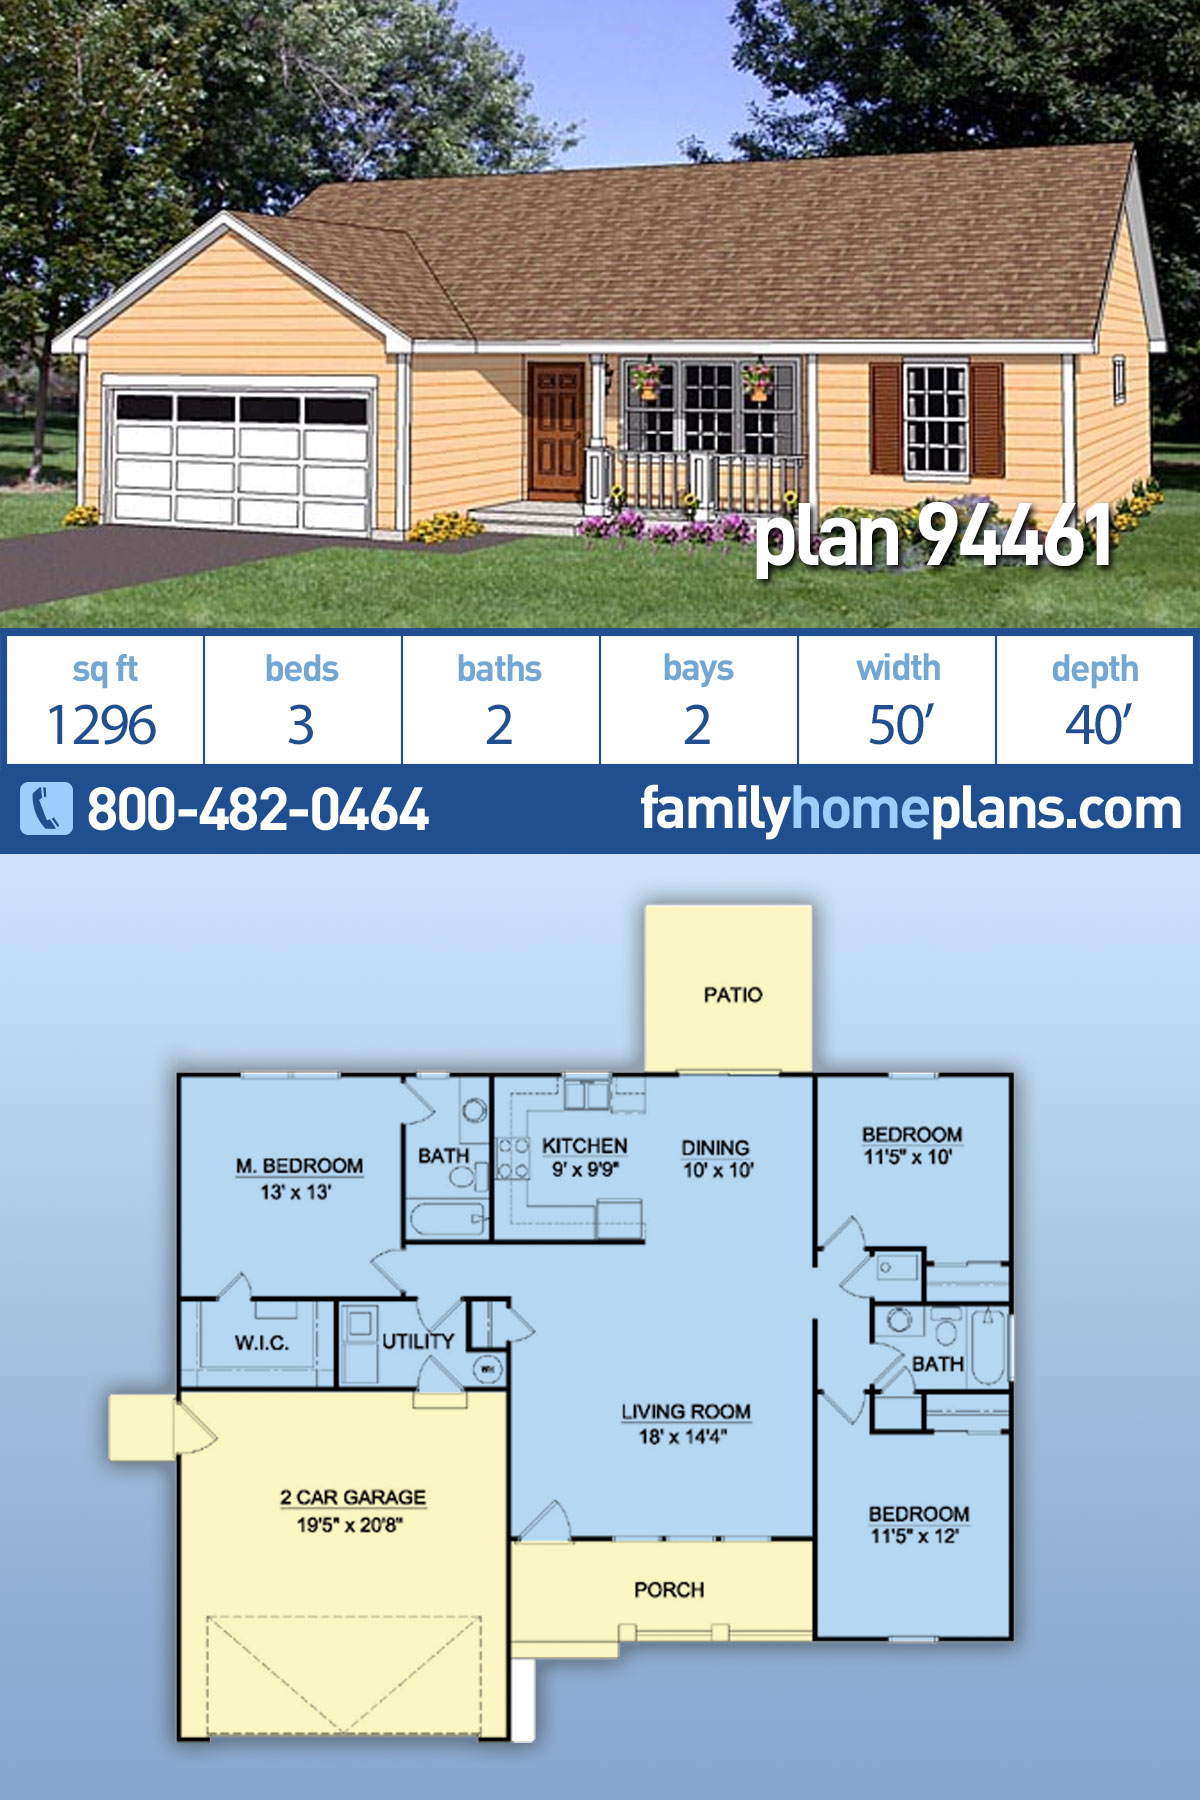 Ranch House Plan 94461 with 3 Beds, 2 Baths, 2 Car Garage